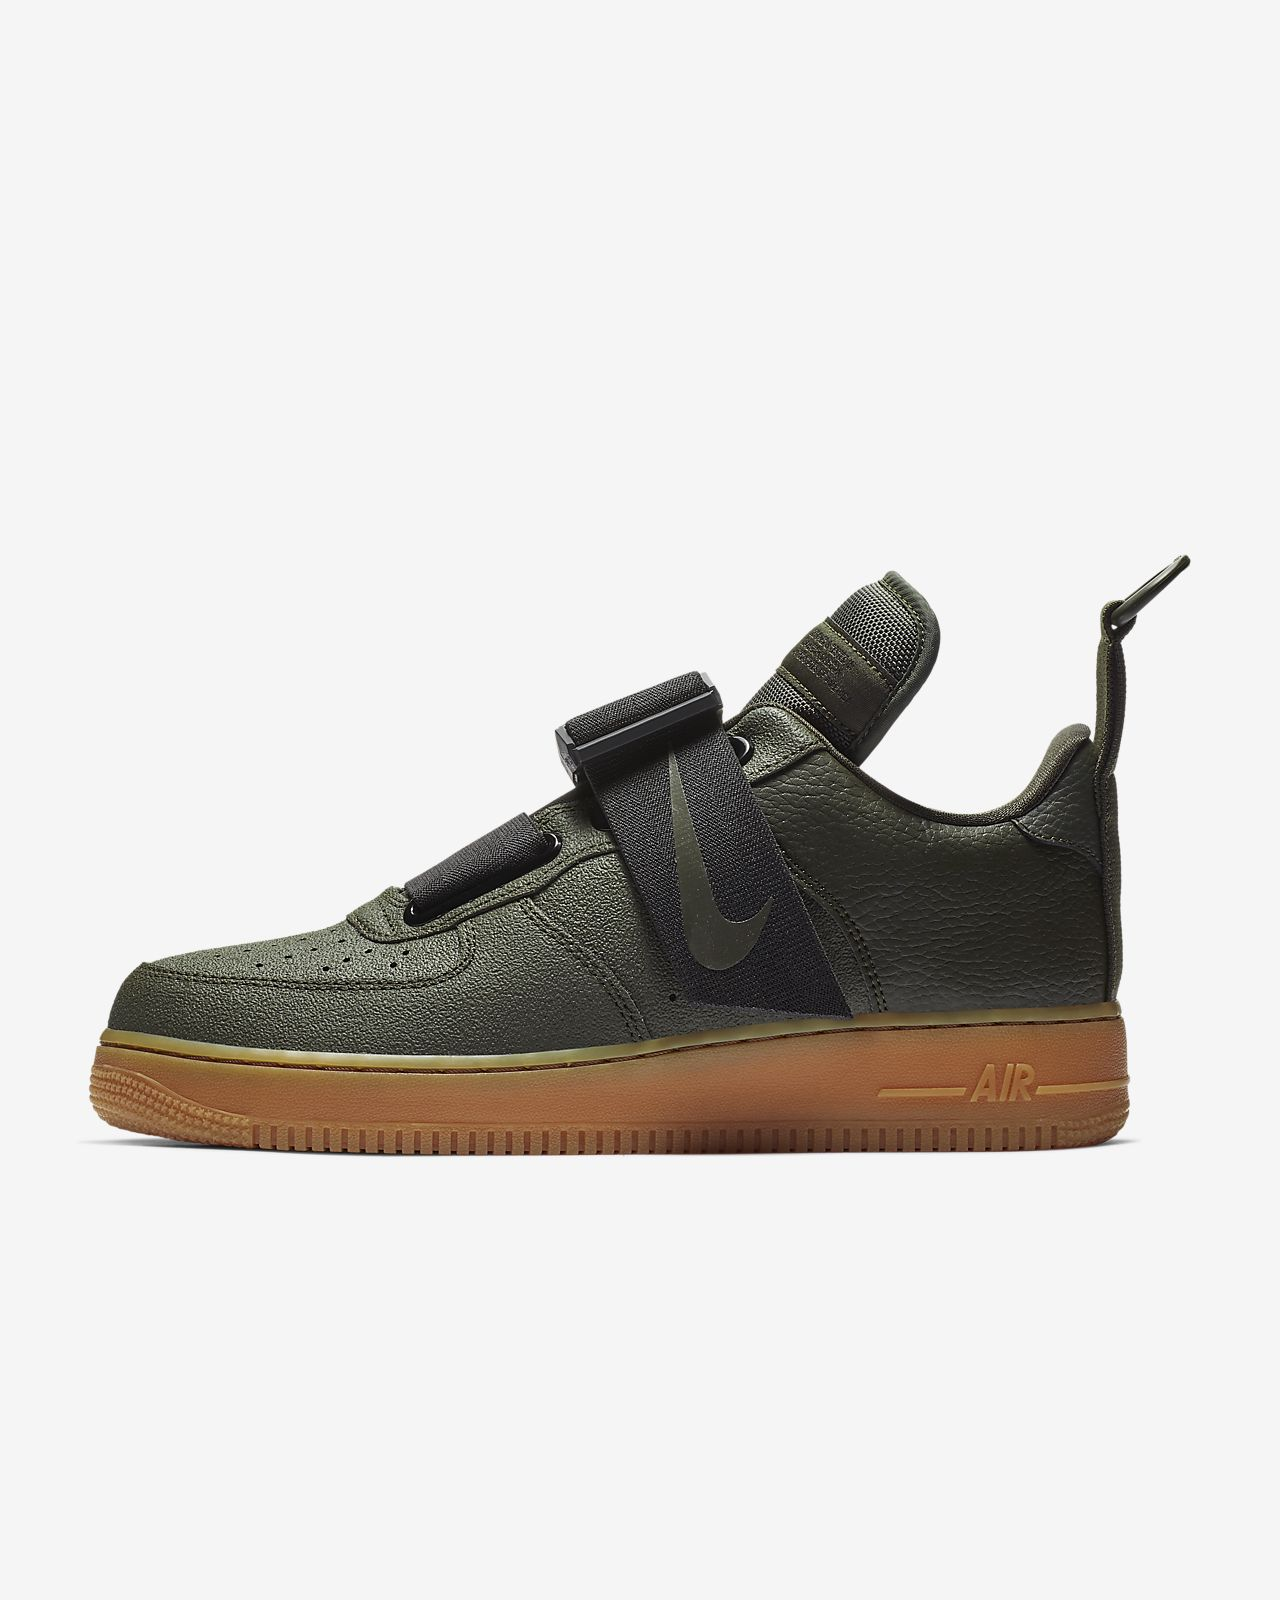 9a8b6a9a1c2a Nike Air Force 1 Utility Men s Shoe. Nike.com ZA